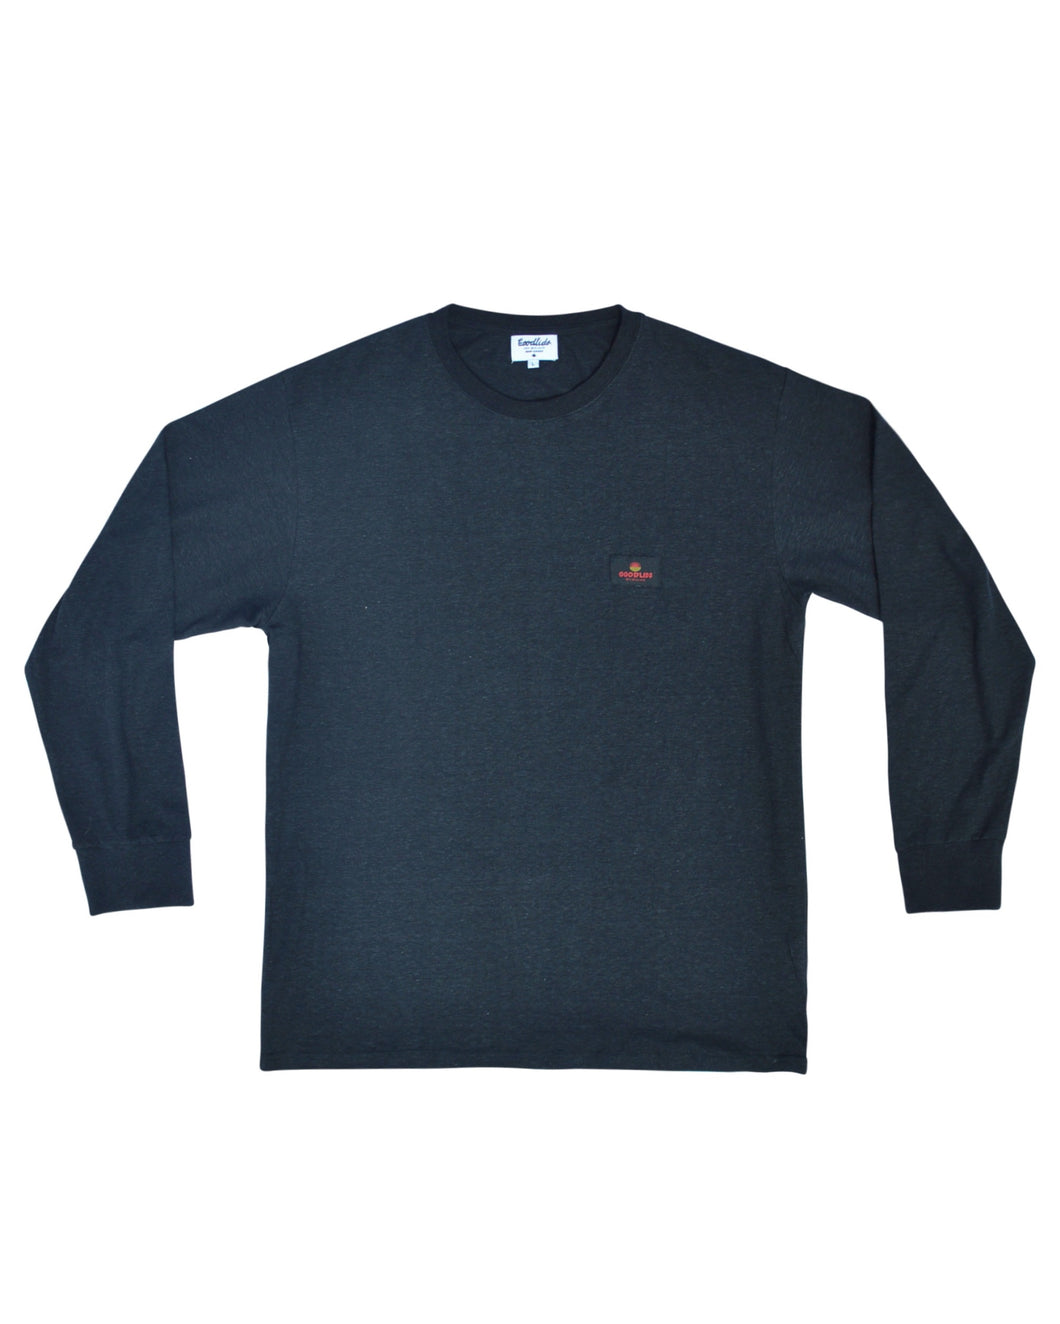 Vintage Long-Sleeve - Black - Goodlids